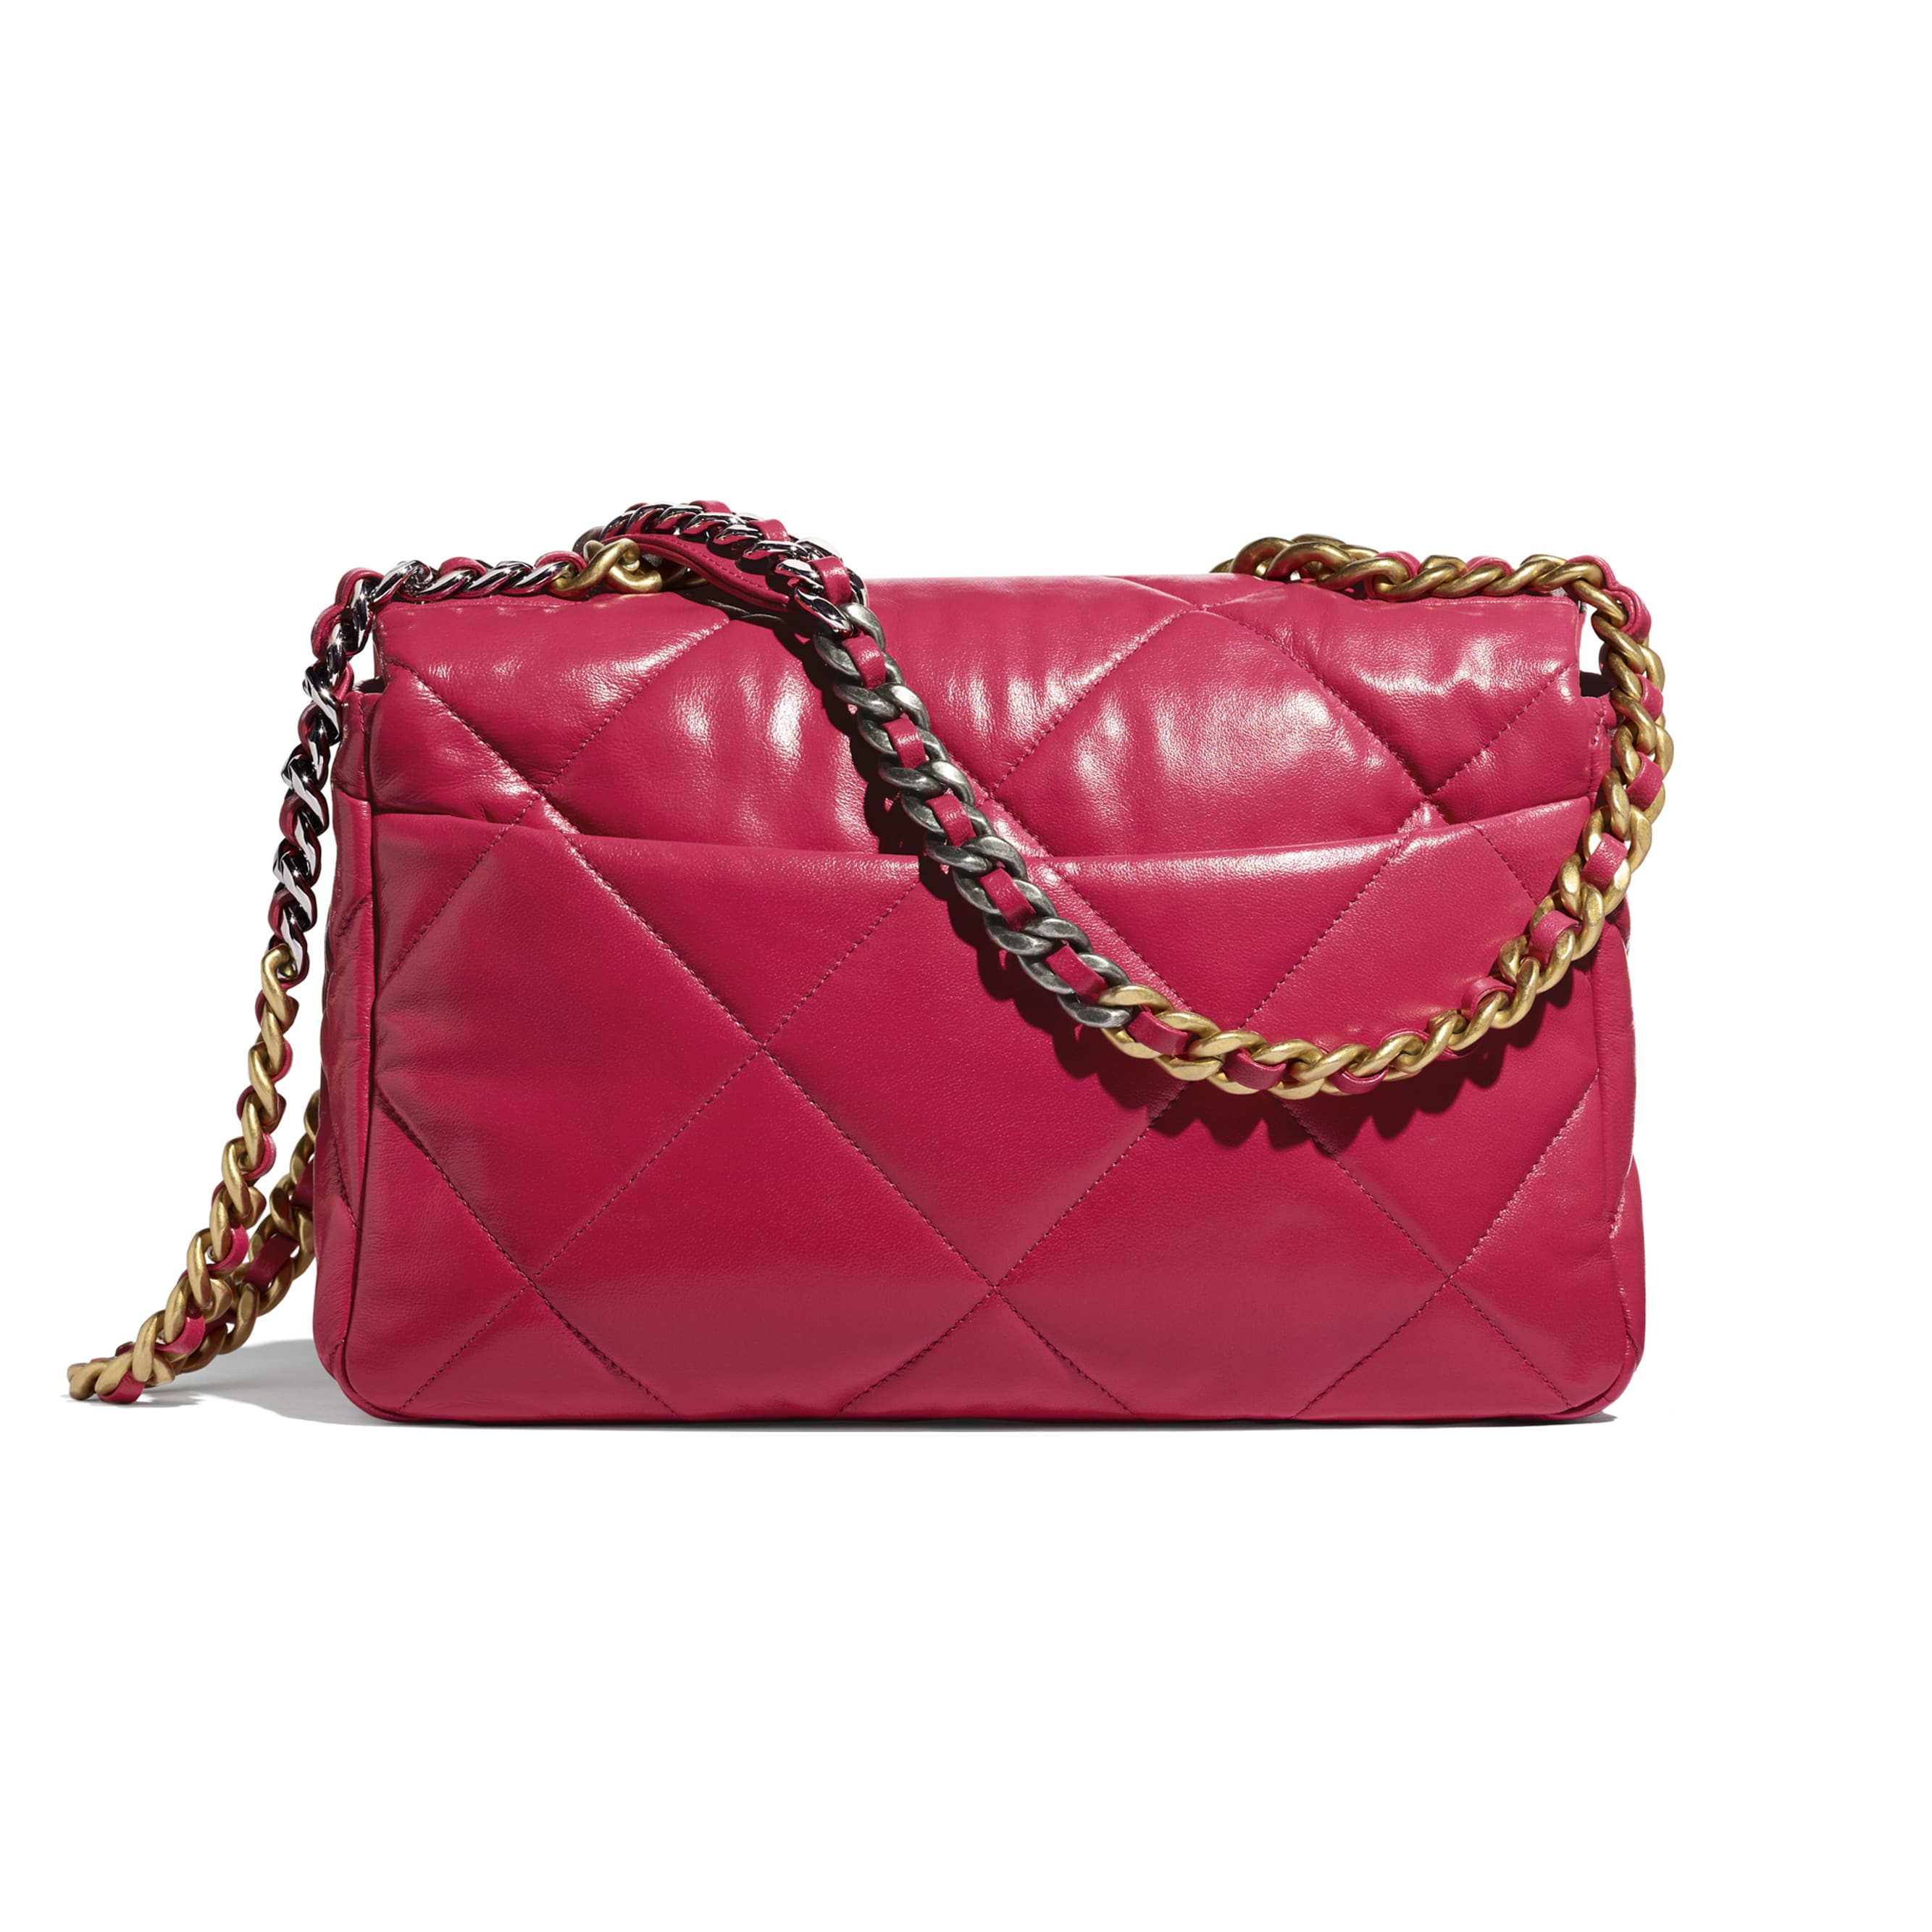 CHANEL 19 Large Flap Bag - Dark Pink - Lambskin, Gold-Tone, Silver-Tone & Ruthenium-Finish Metal - CHANEL - Alternative view - see standard sized version